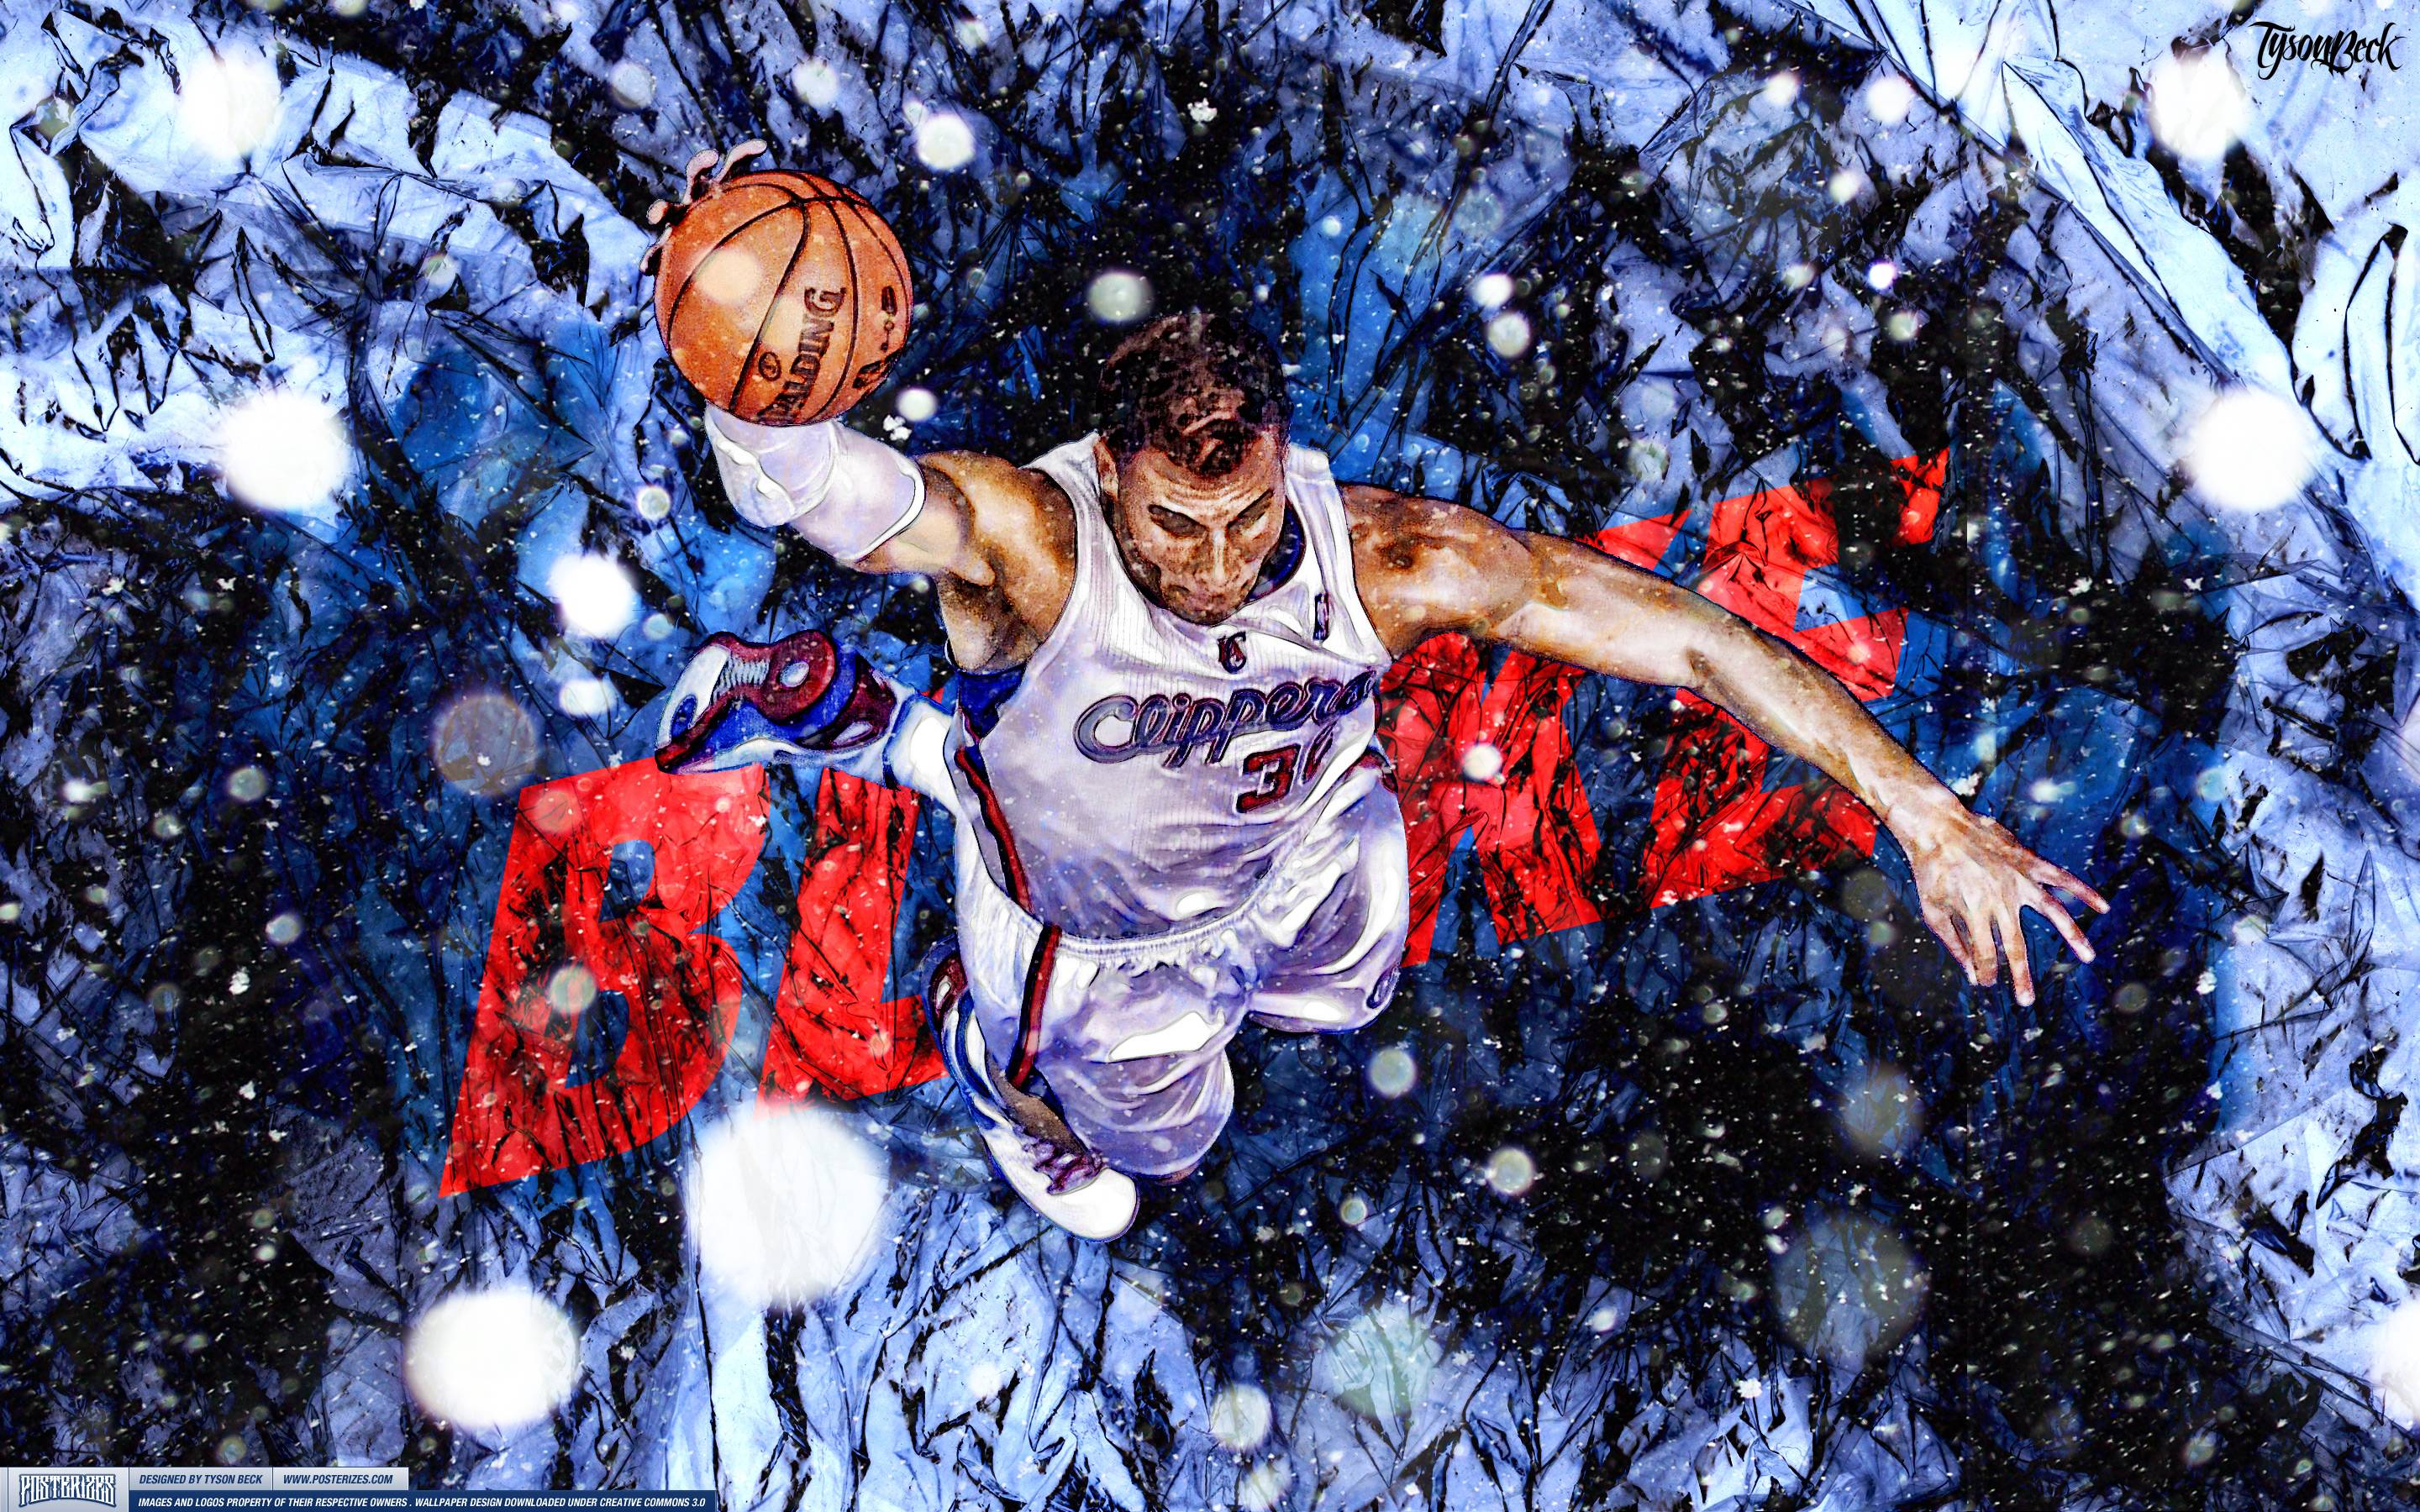 Hd wallpaper nba - Los Angeles Clippers Posterizes Nba Wallpapers Basketball